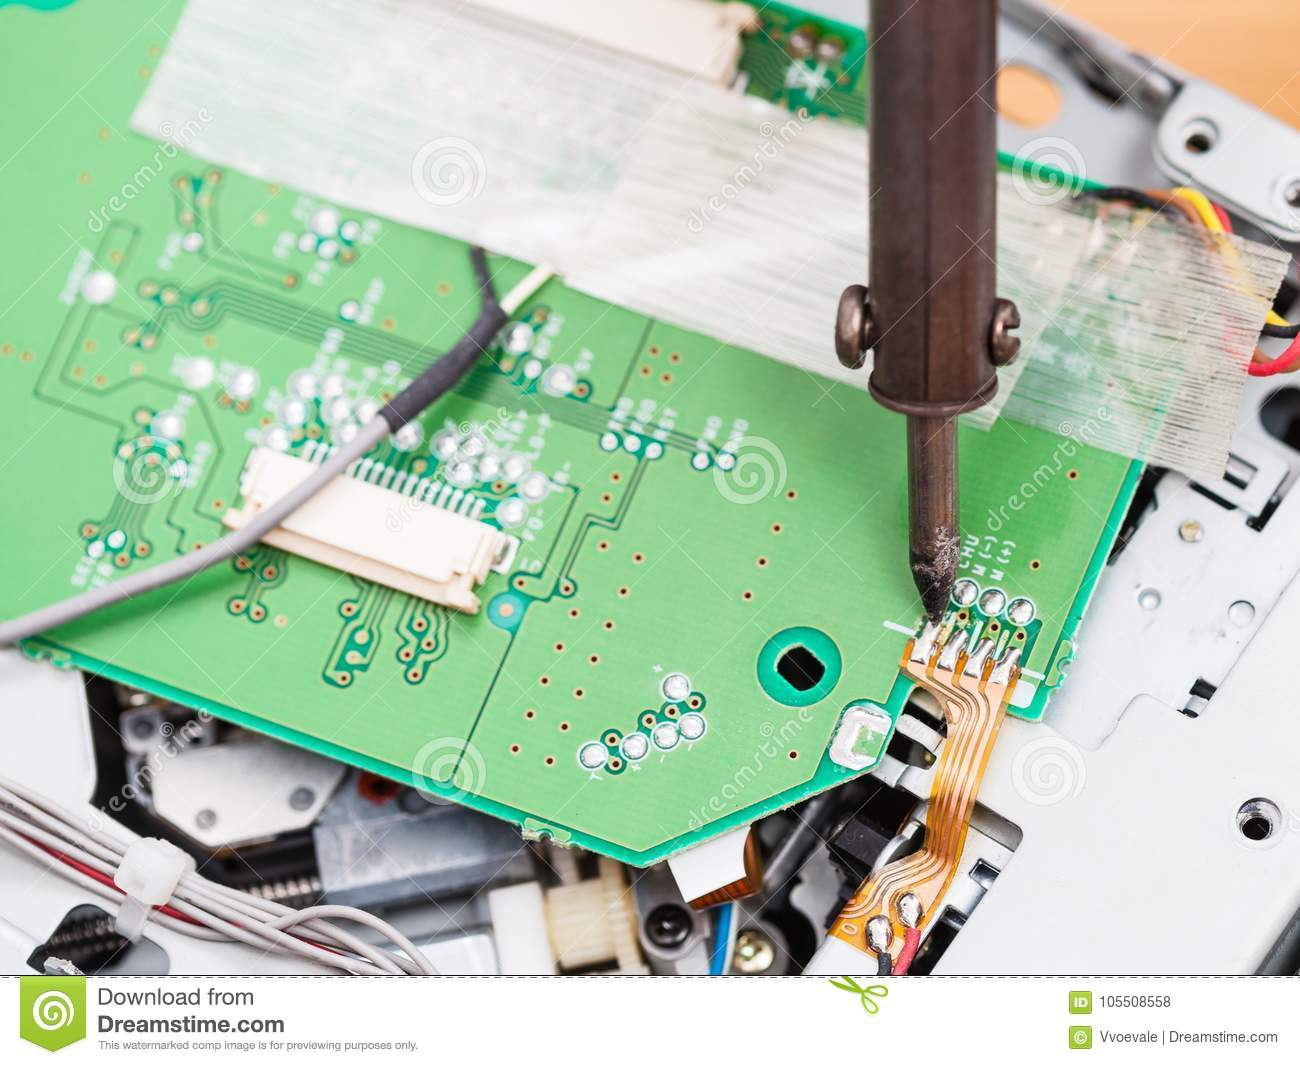 Electric Circuit Board Electrical Kids Repair With Soldering Iron Stock Photo Rh Dreamstime Com Boards For Fo